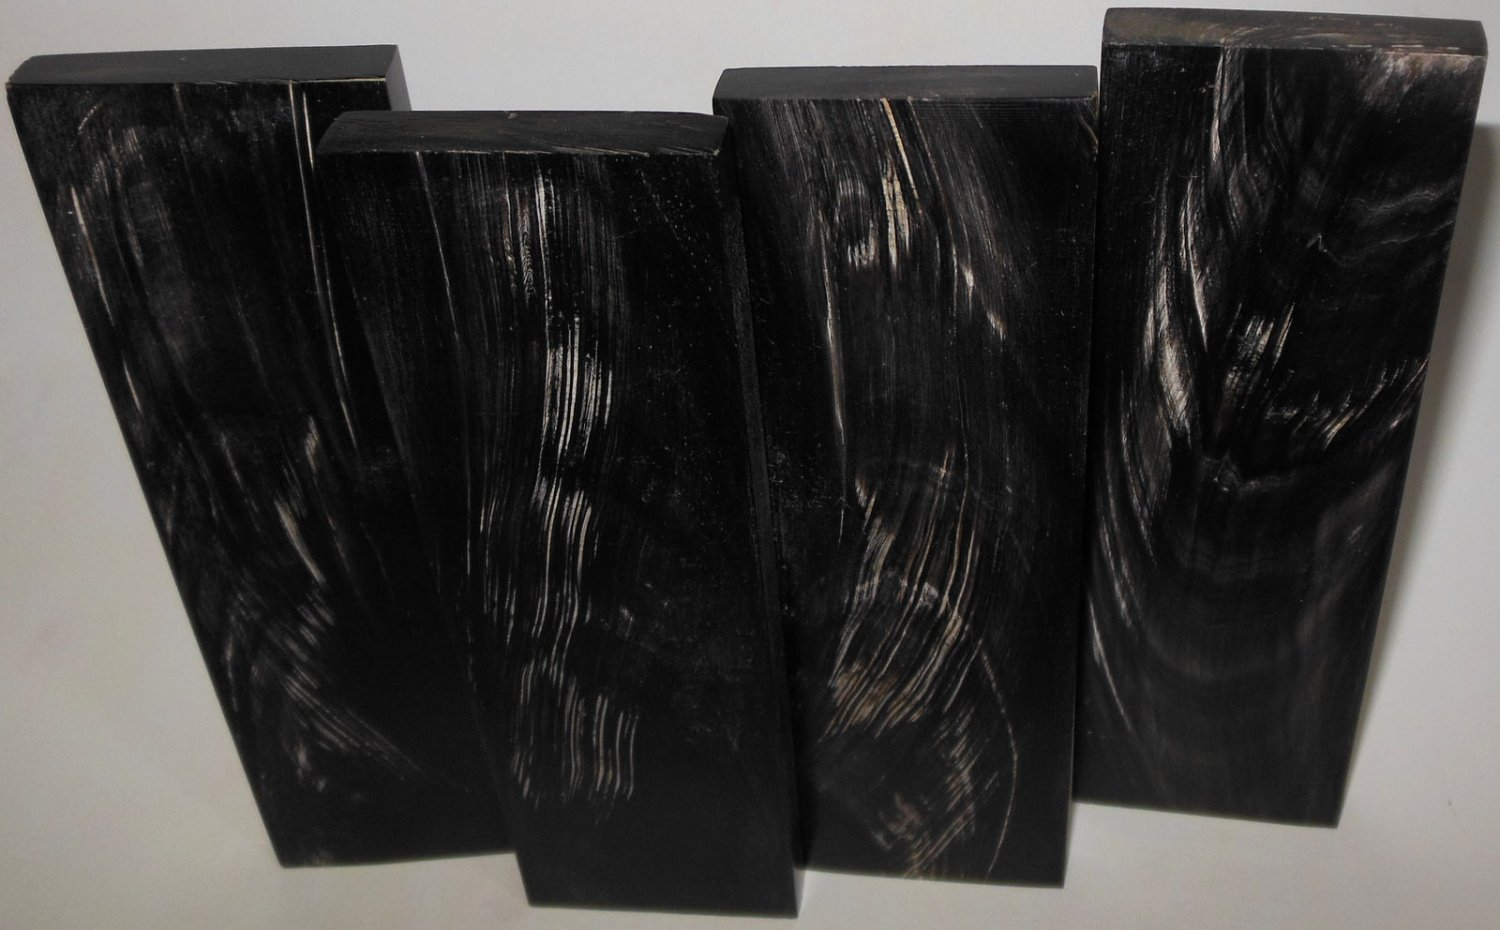 4 Buffalo Streaked Horn Scales 6x1.75x3/8 Knifemaking Real Horn Eye Glass Frames